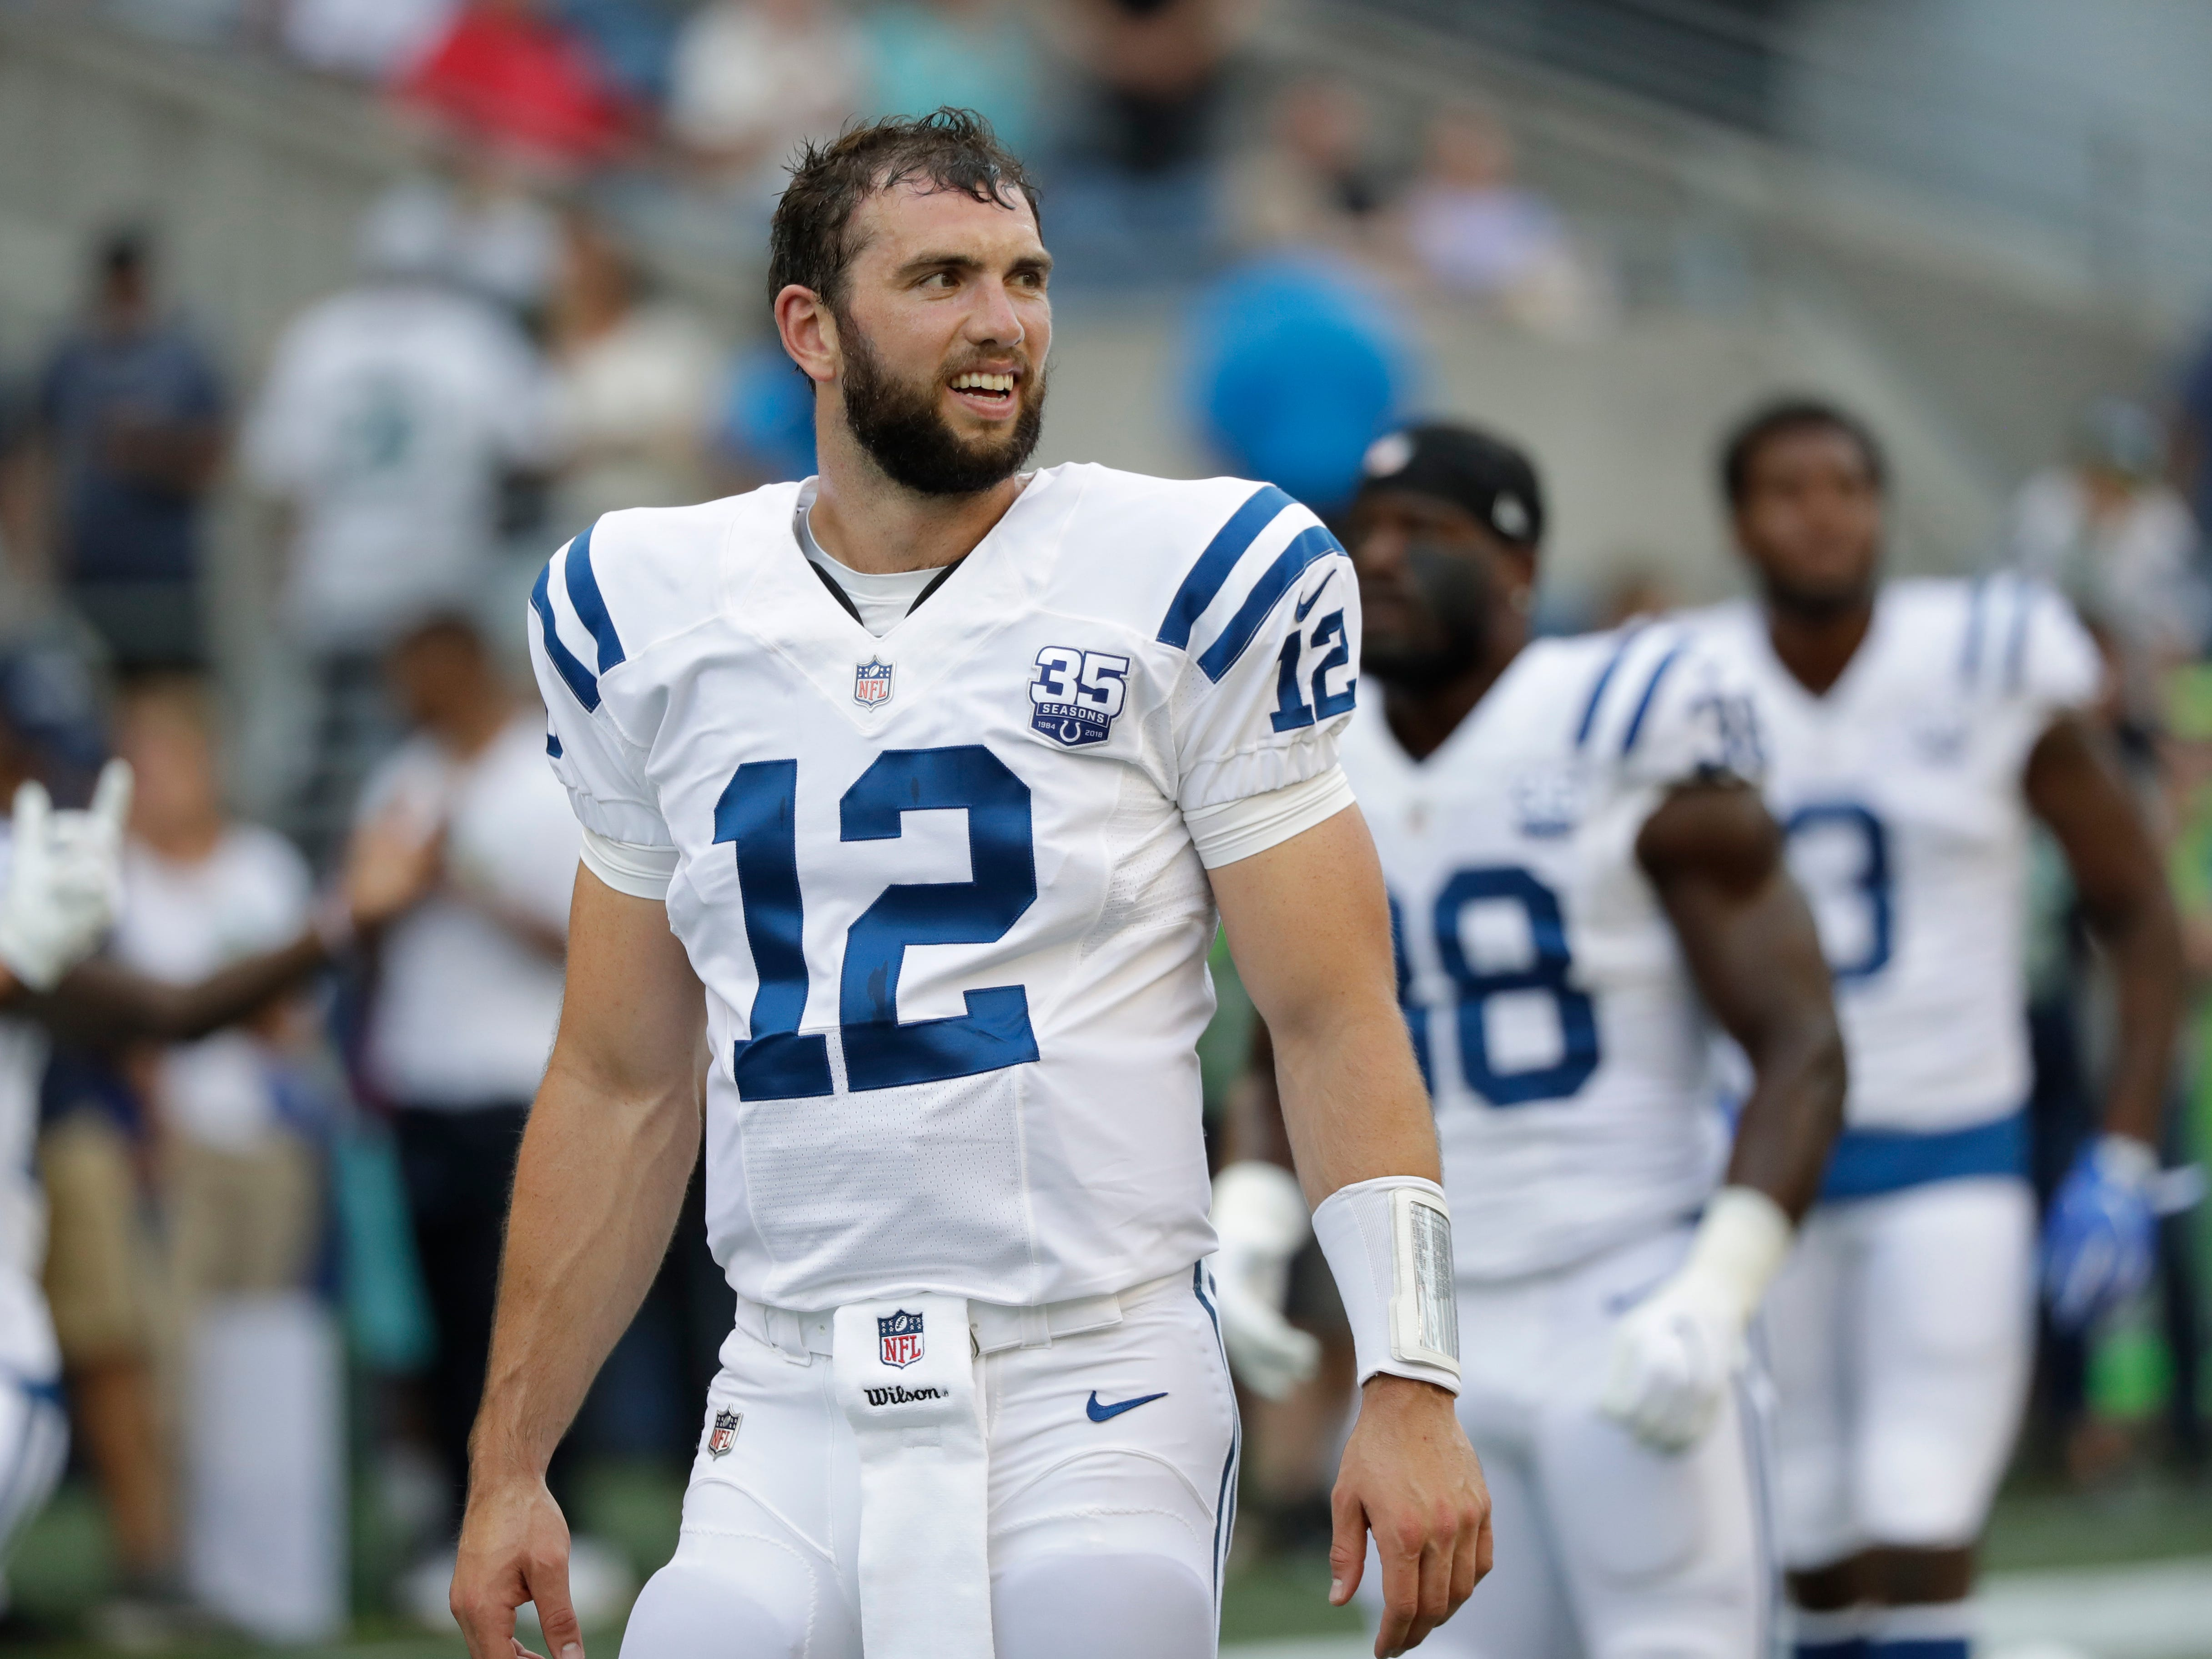 Indianapolis Colts quarterback Andrew Luck stands on the field before an NFL football preseason game against the Seattle Seahawks, Thursday, Aug. 9, 2018, in Seattle. (AP Photo/Elaine Thompson)